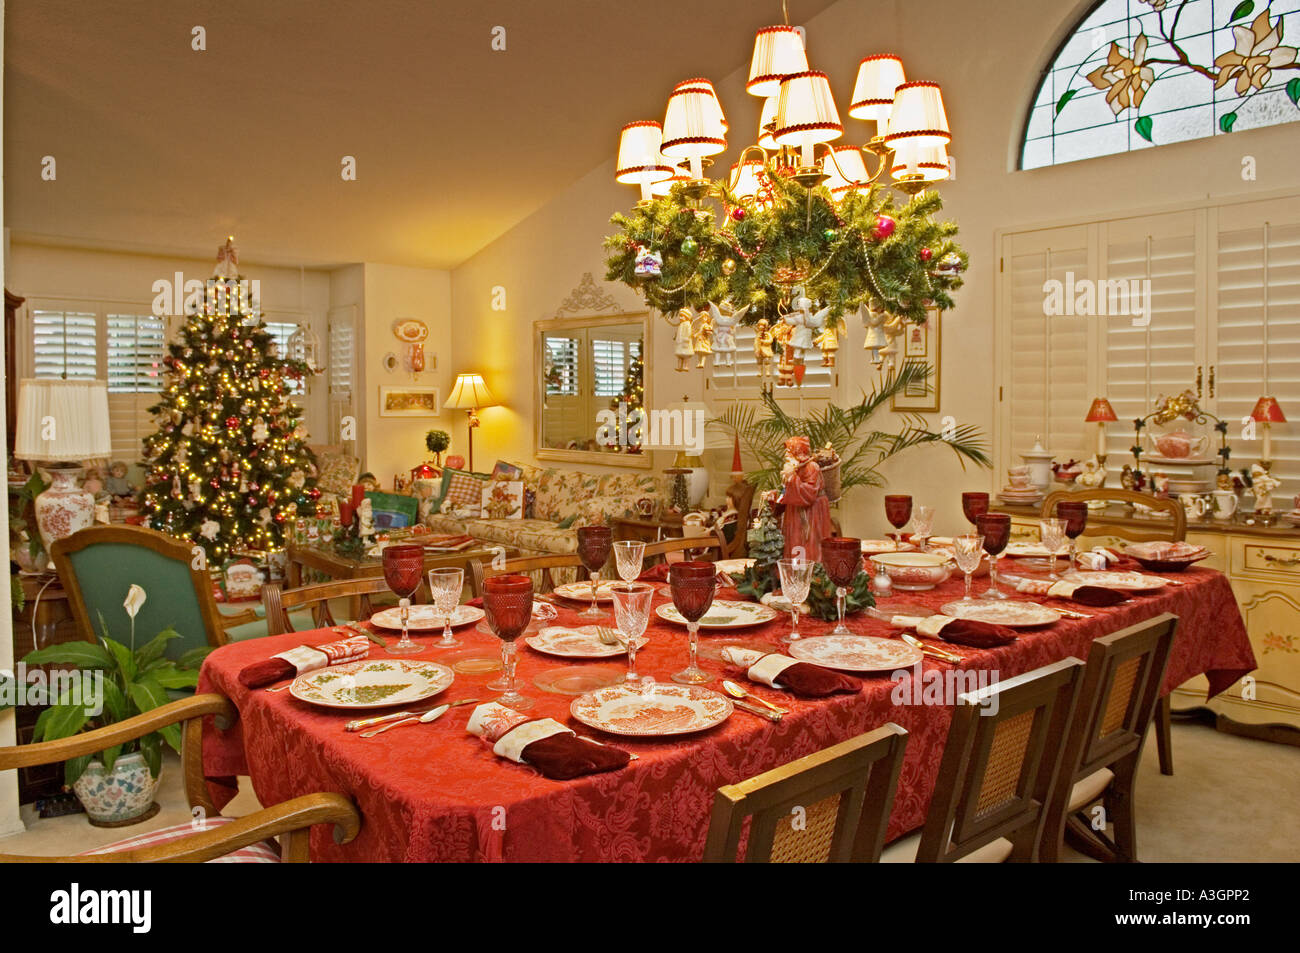 Dining Room Table Set For Christmas Dinner In Living Room